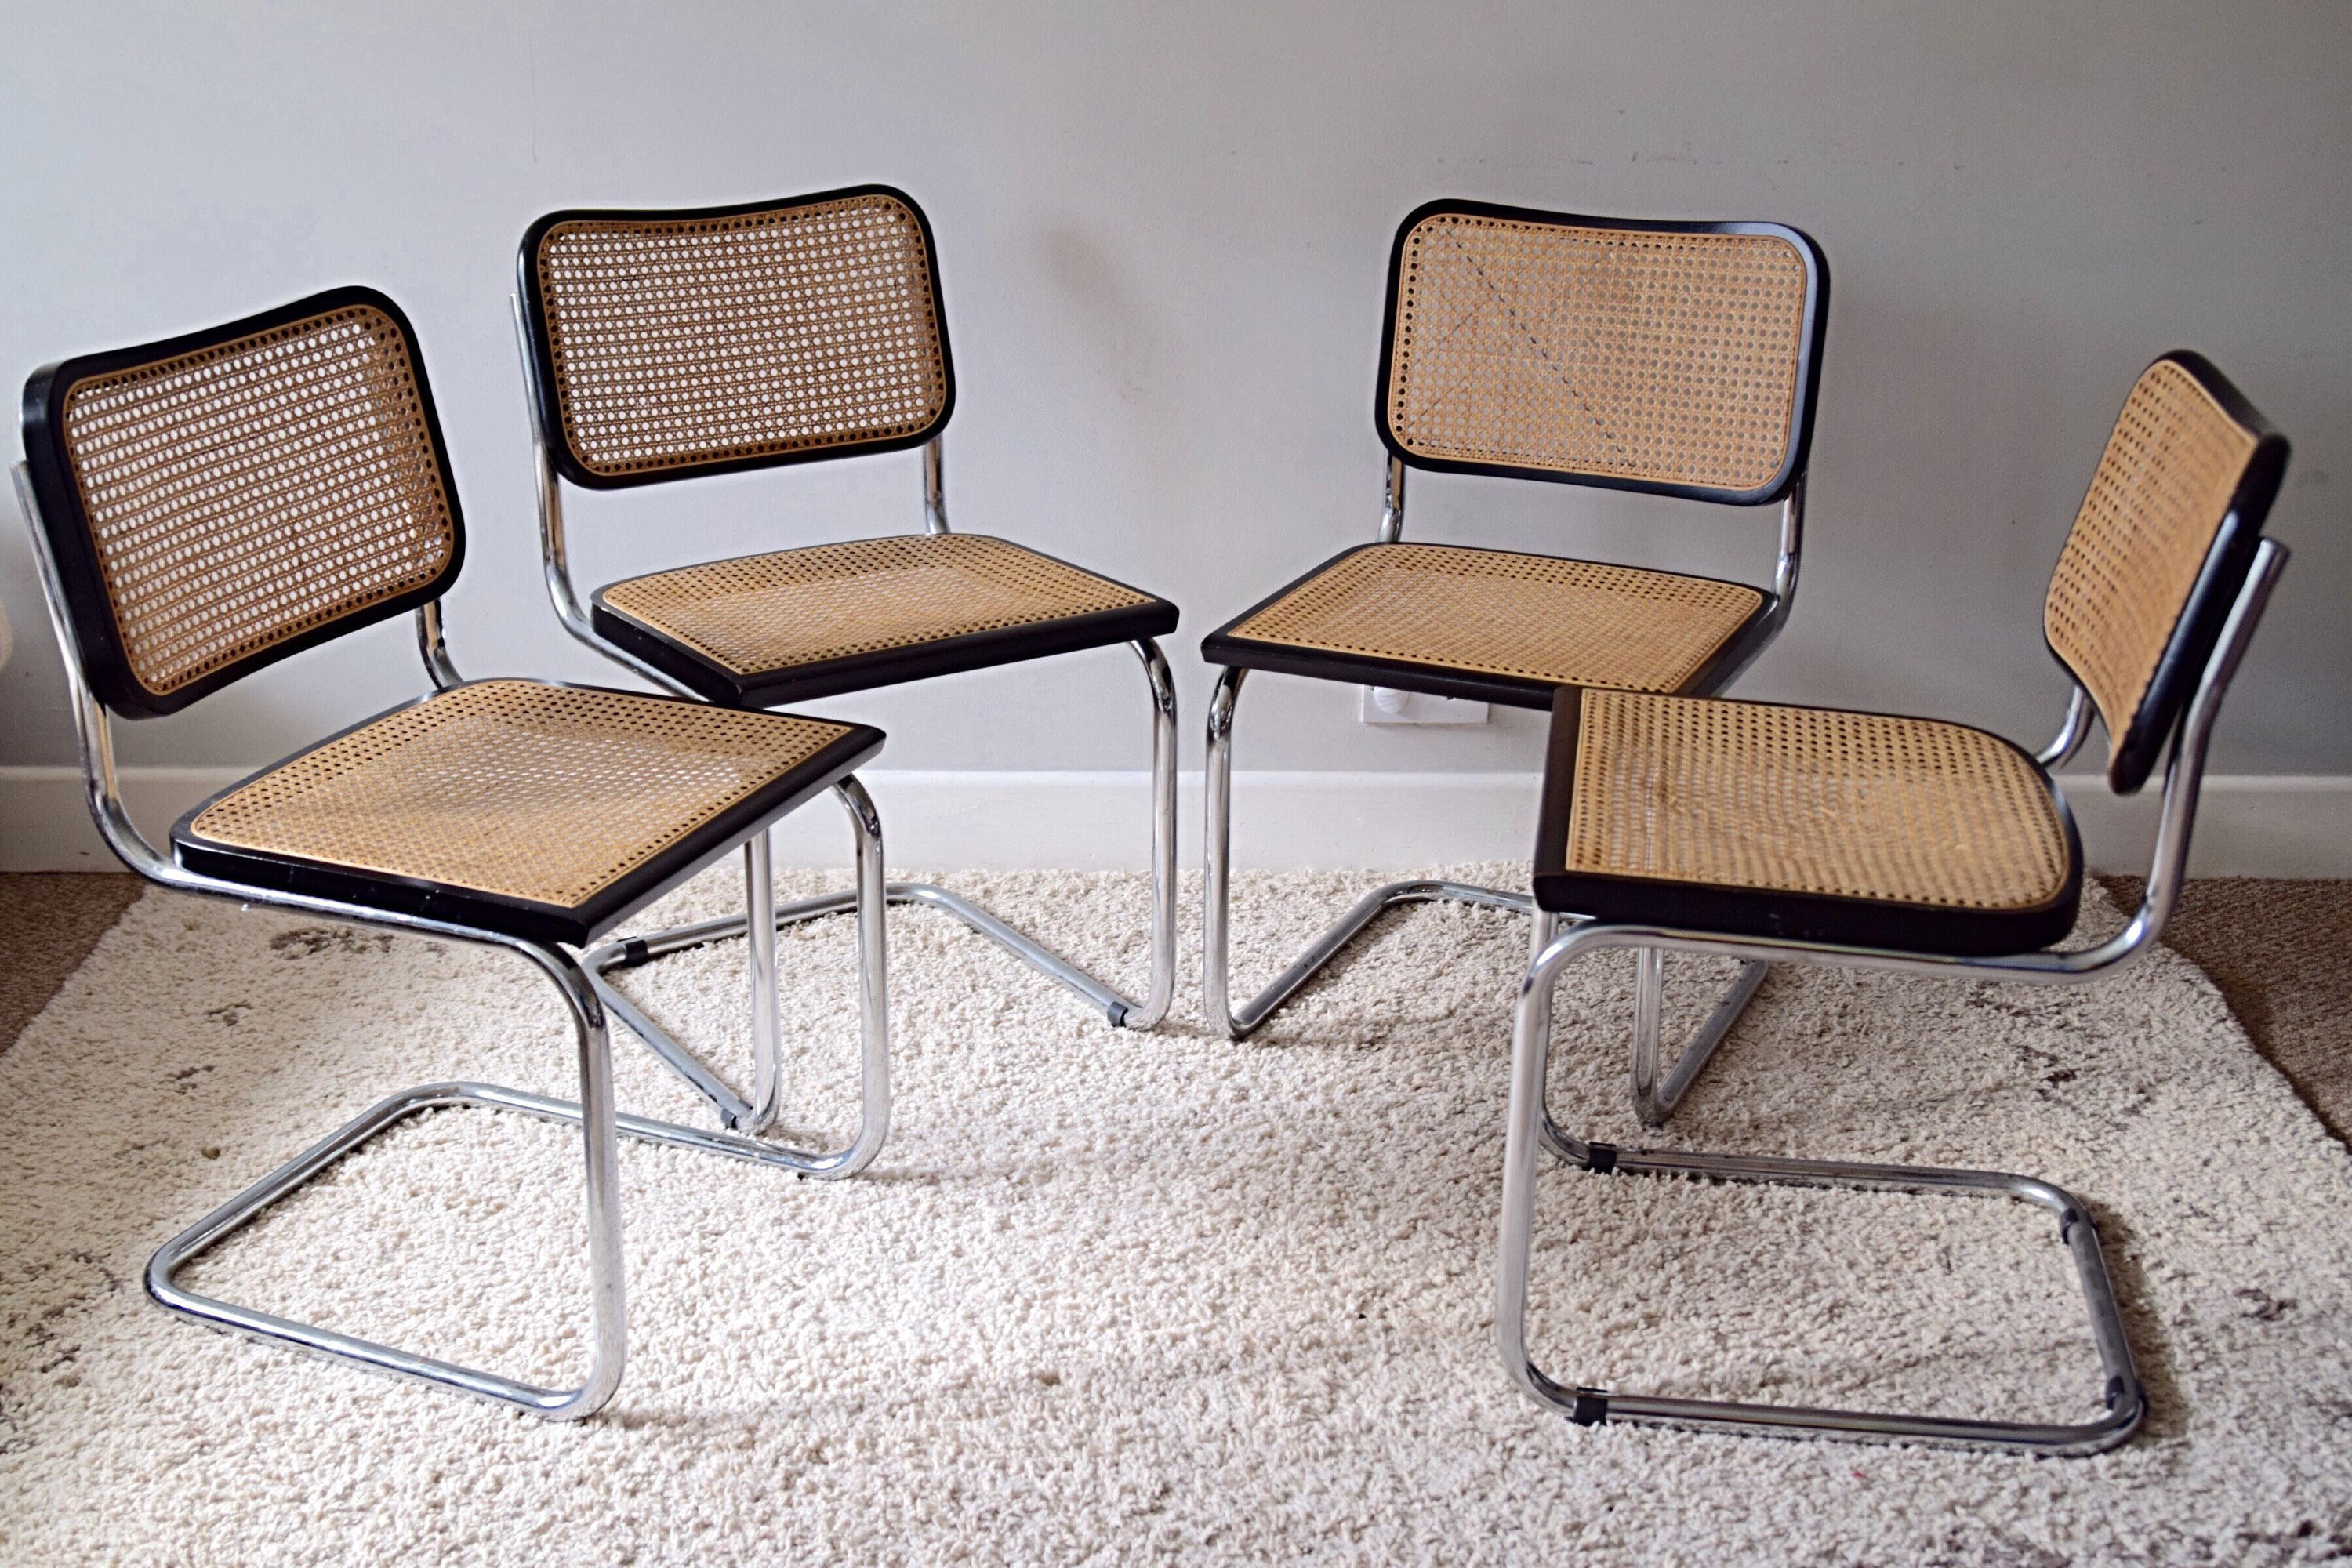 newest collection 13b3e cb561 Four Vintage Marcel Breuer Style Cesca Dining Chairs 1960s/70s Habitat